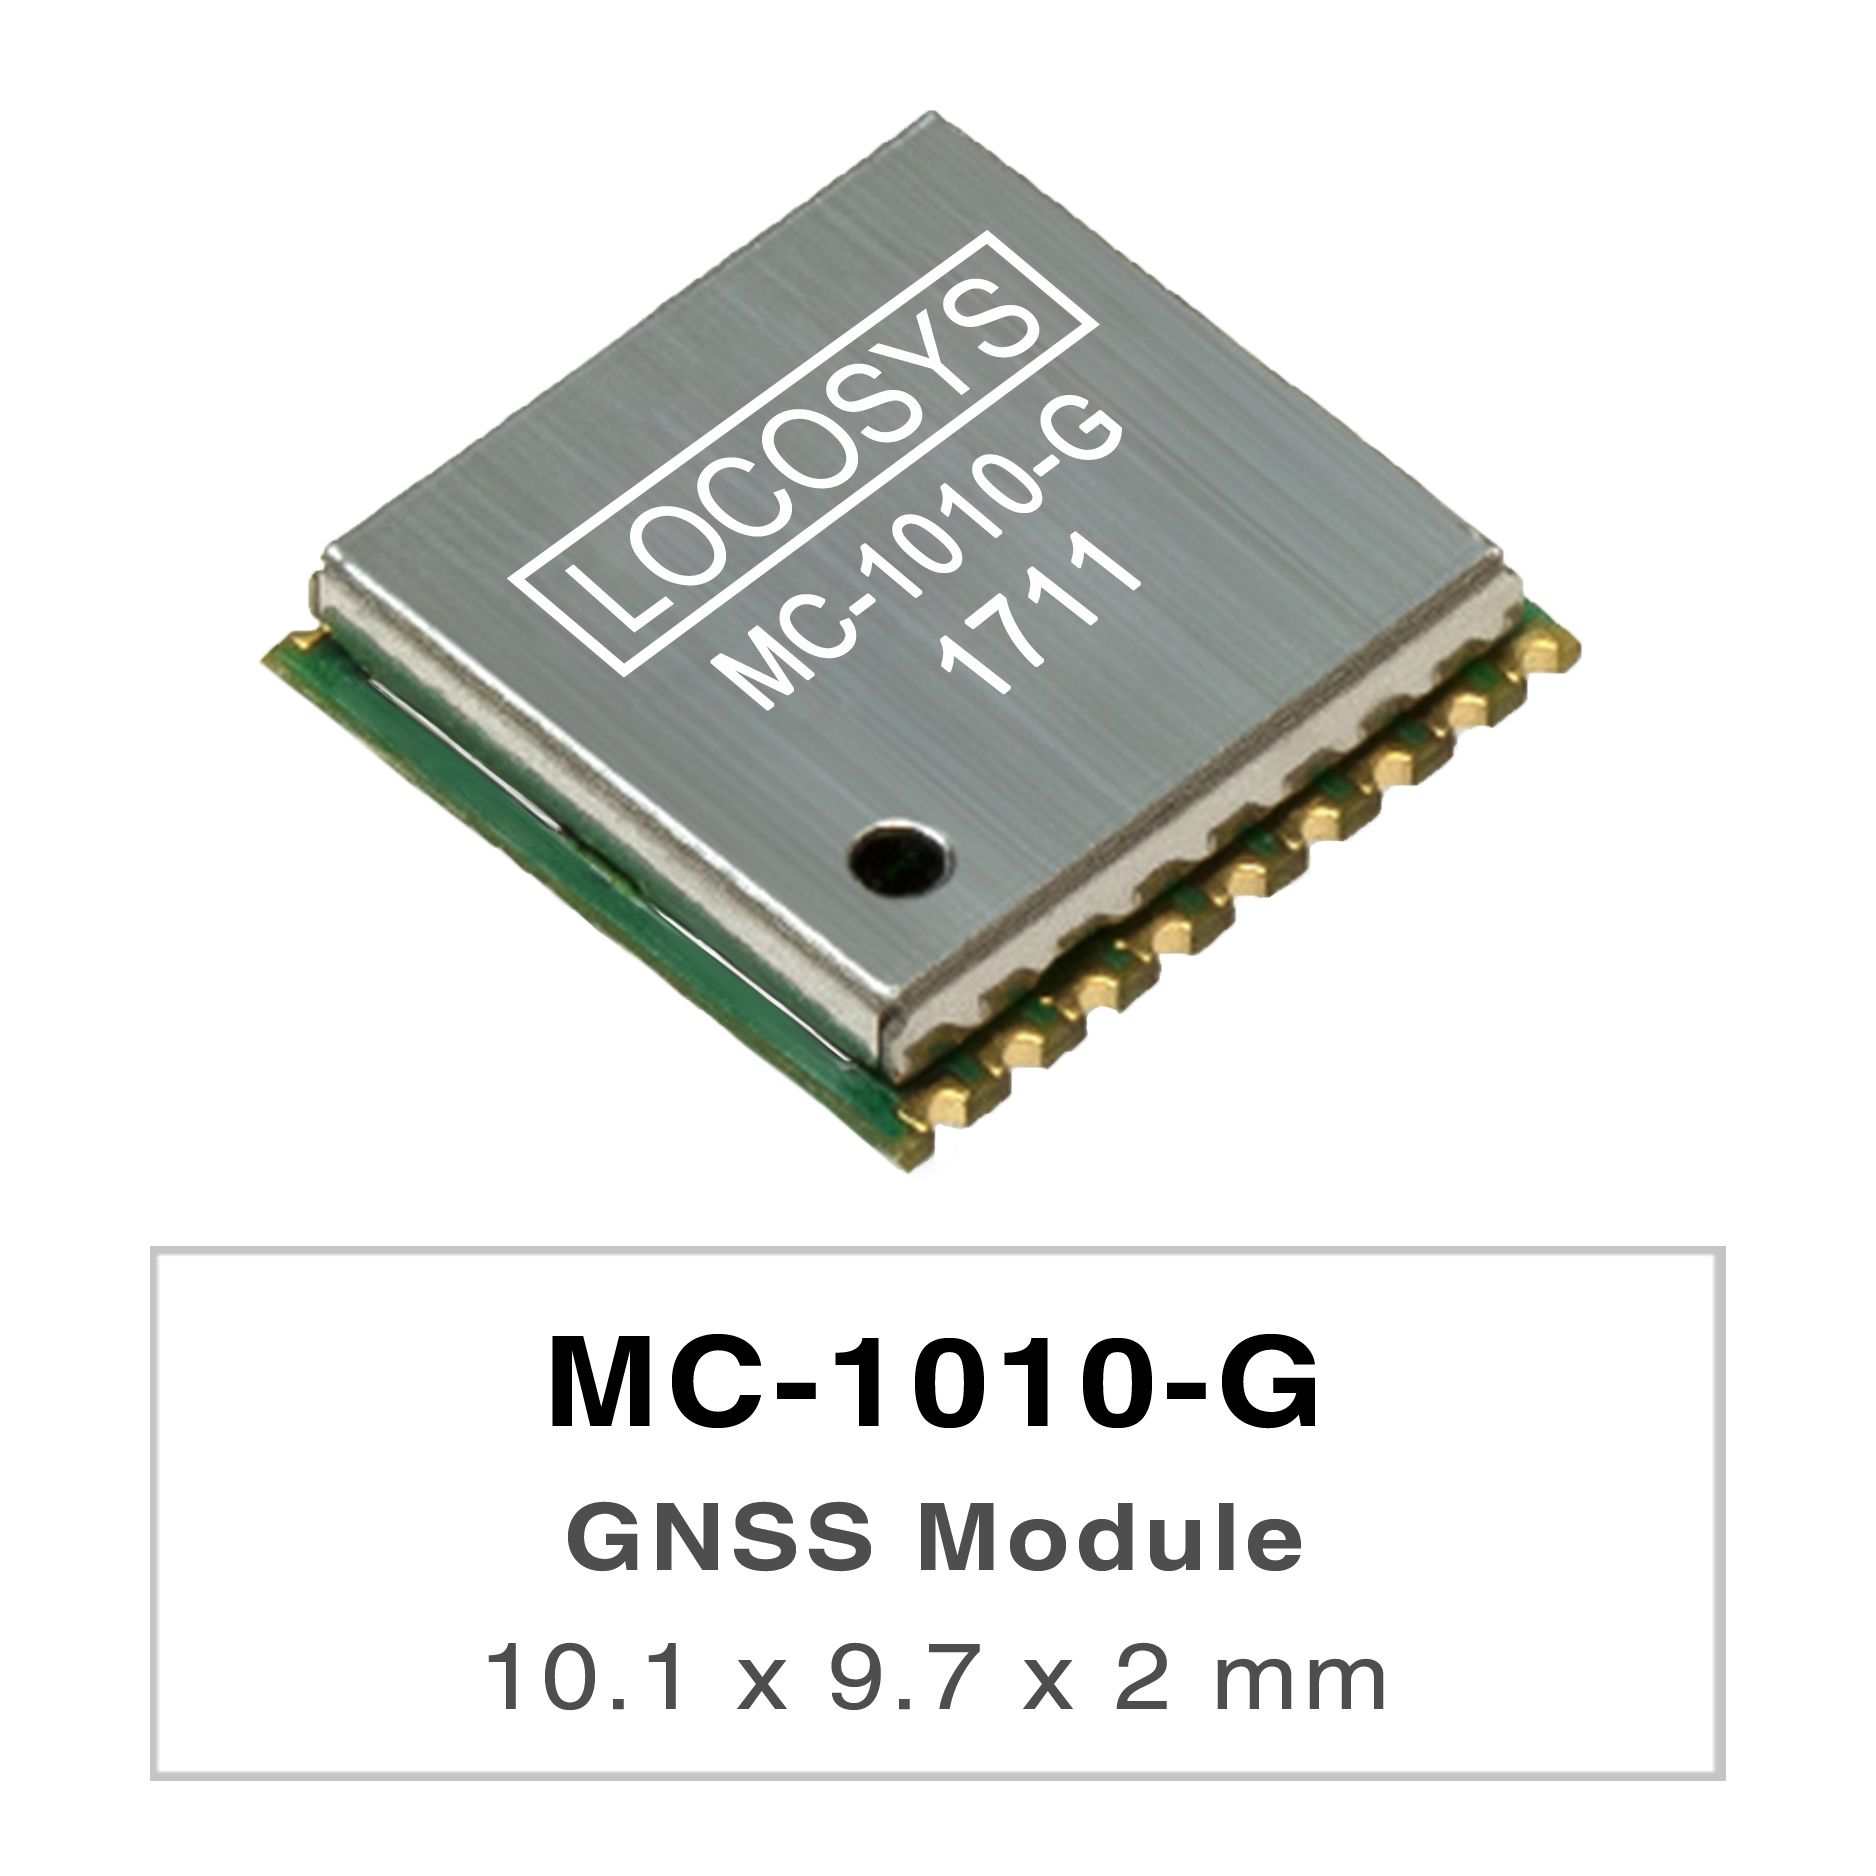 LOCOSYS MC-1010-G is a complete standalone GNSS module.